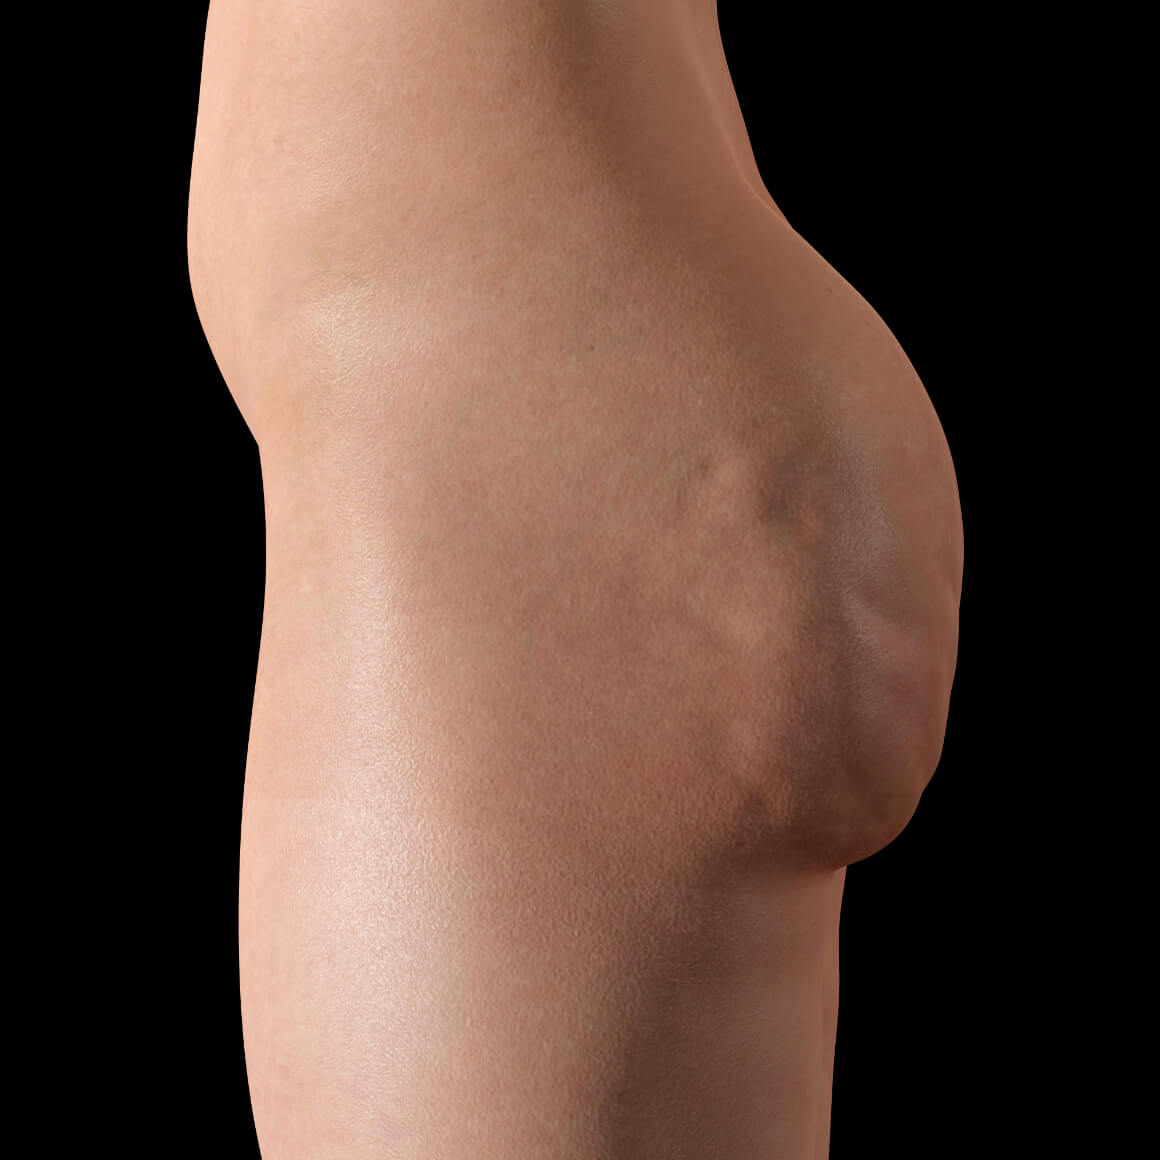 Female patient from Clinique Chloé positioned sideways showing cellulite in the buttock area